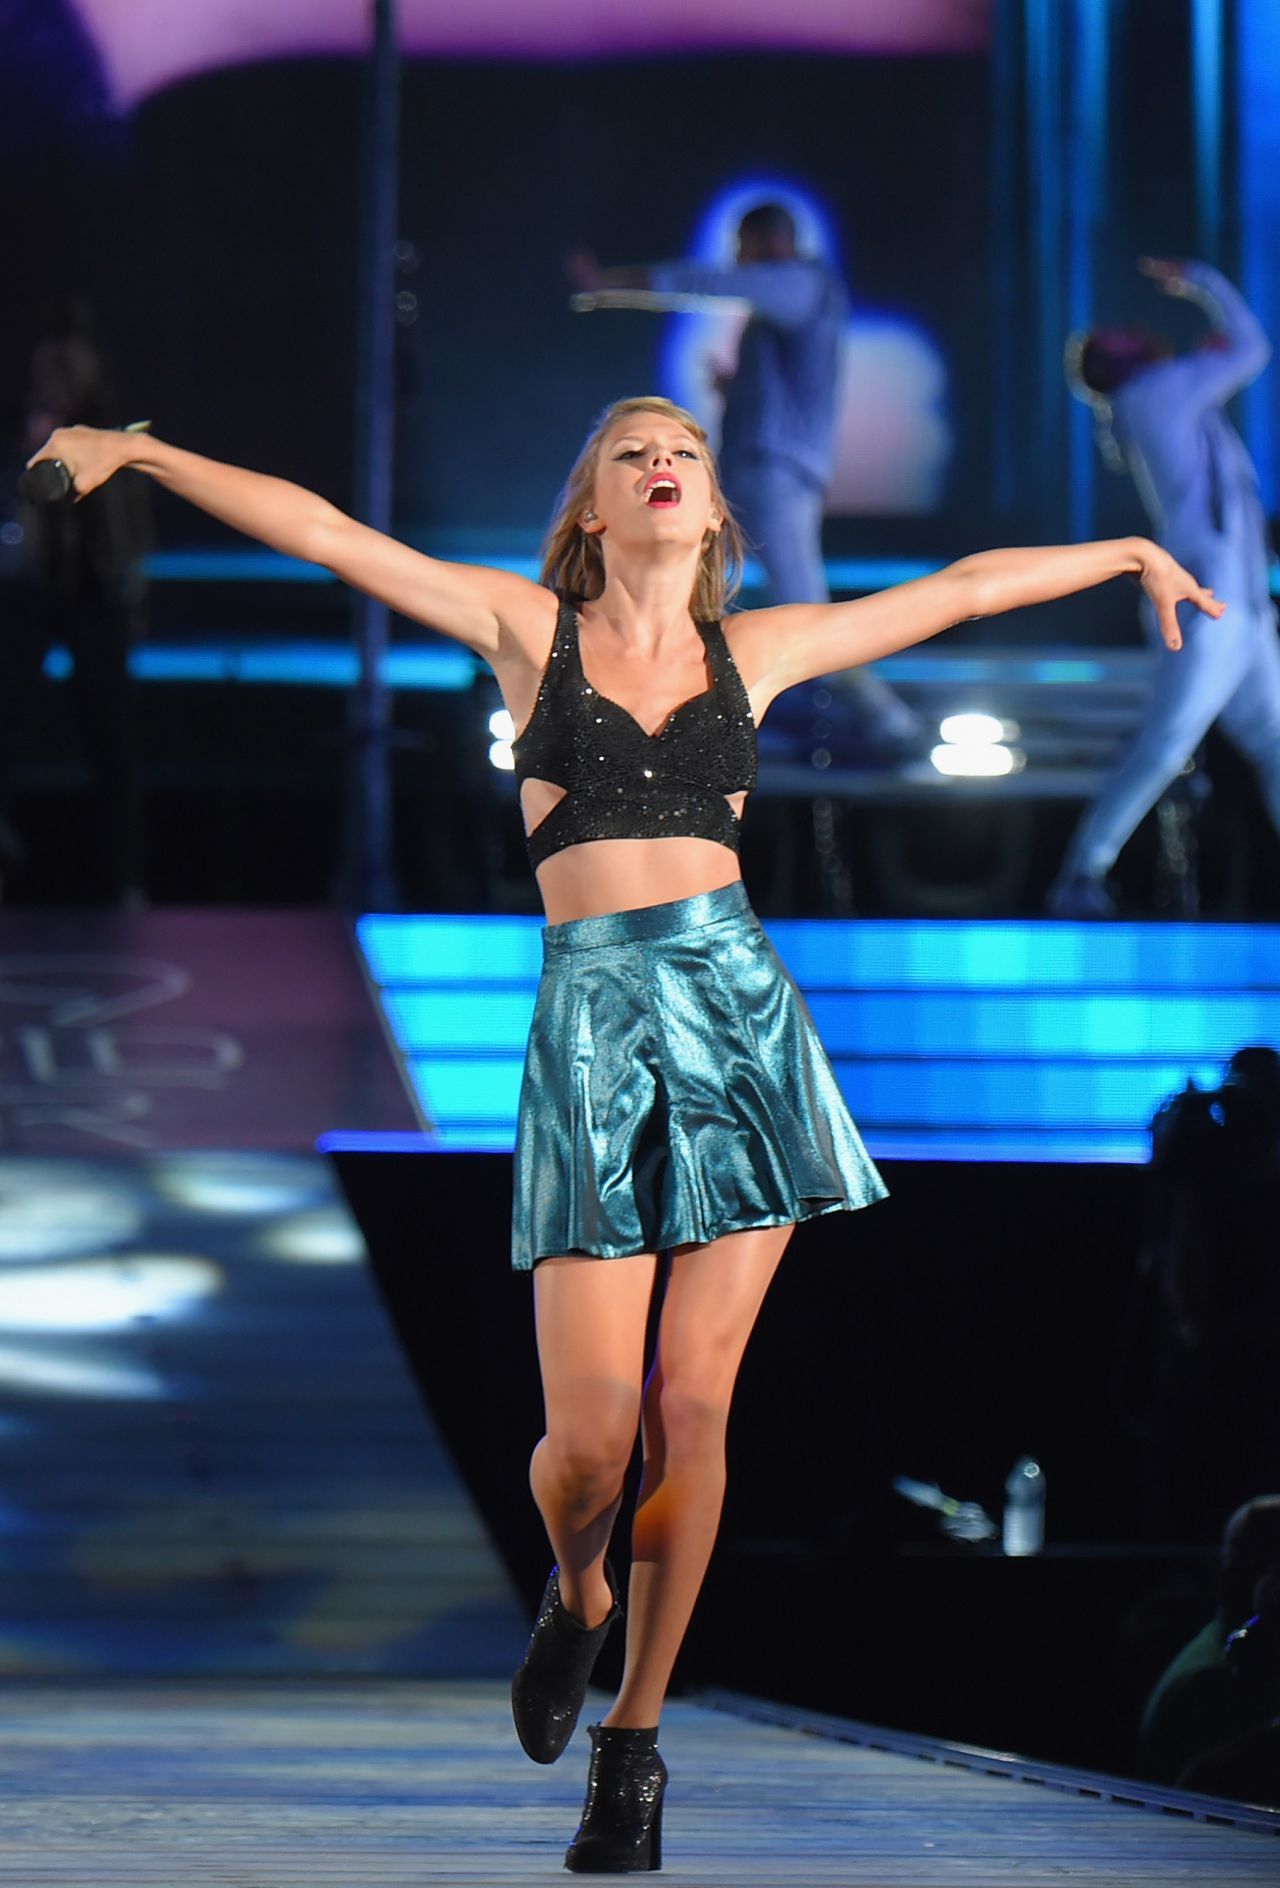 Taylor Swift - 1989 World Tour Concert in Foxborough ... - photo#18